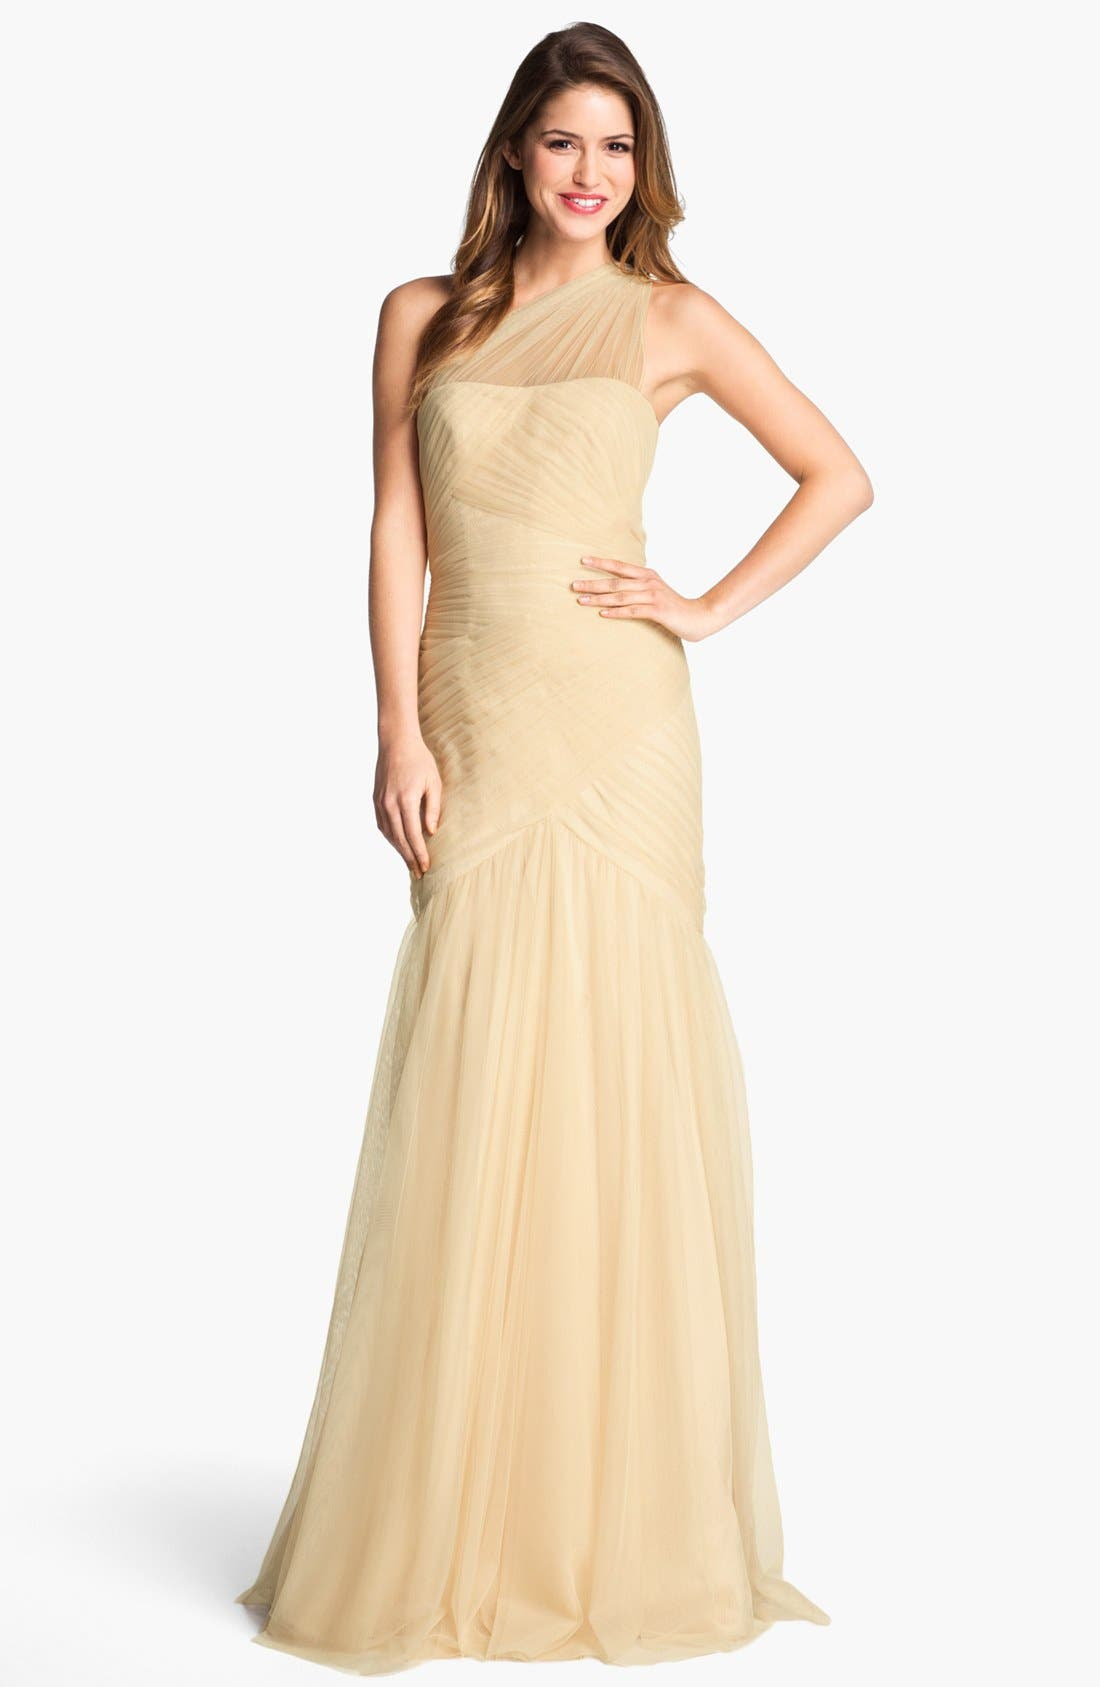 Alternate Image 1 Selected - ML Monique Lhuillier One Shoulder Tulle Trumpet Gown (Nordstrom Exclusive)